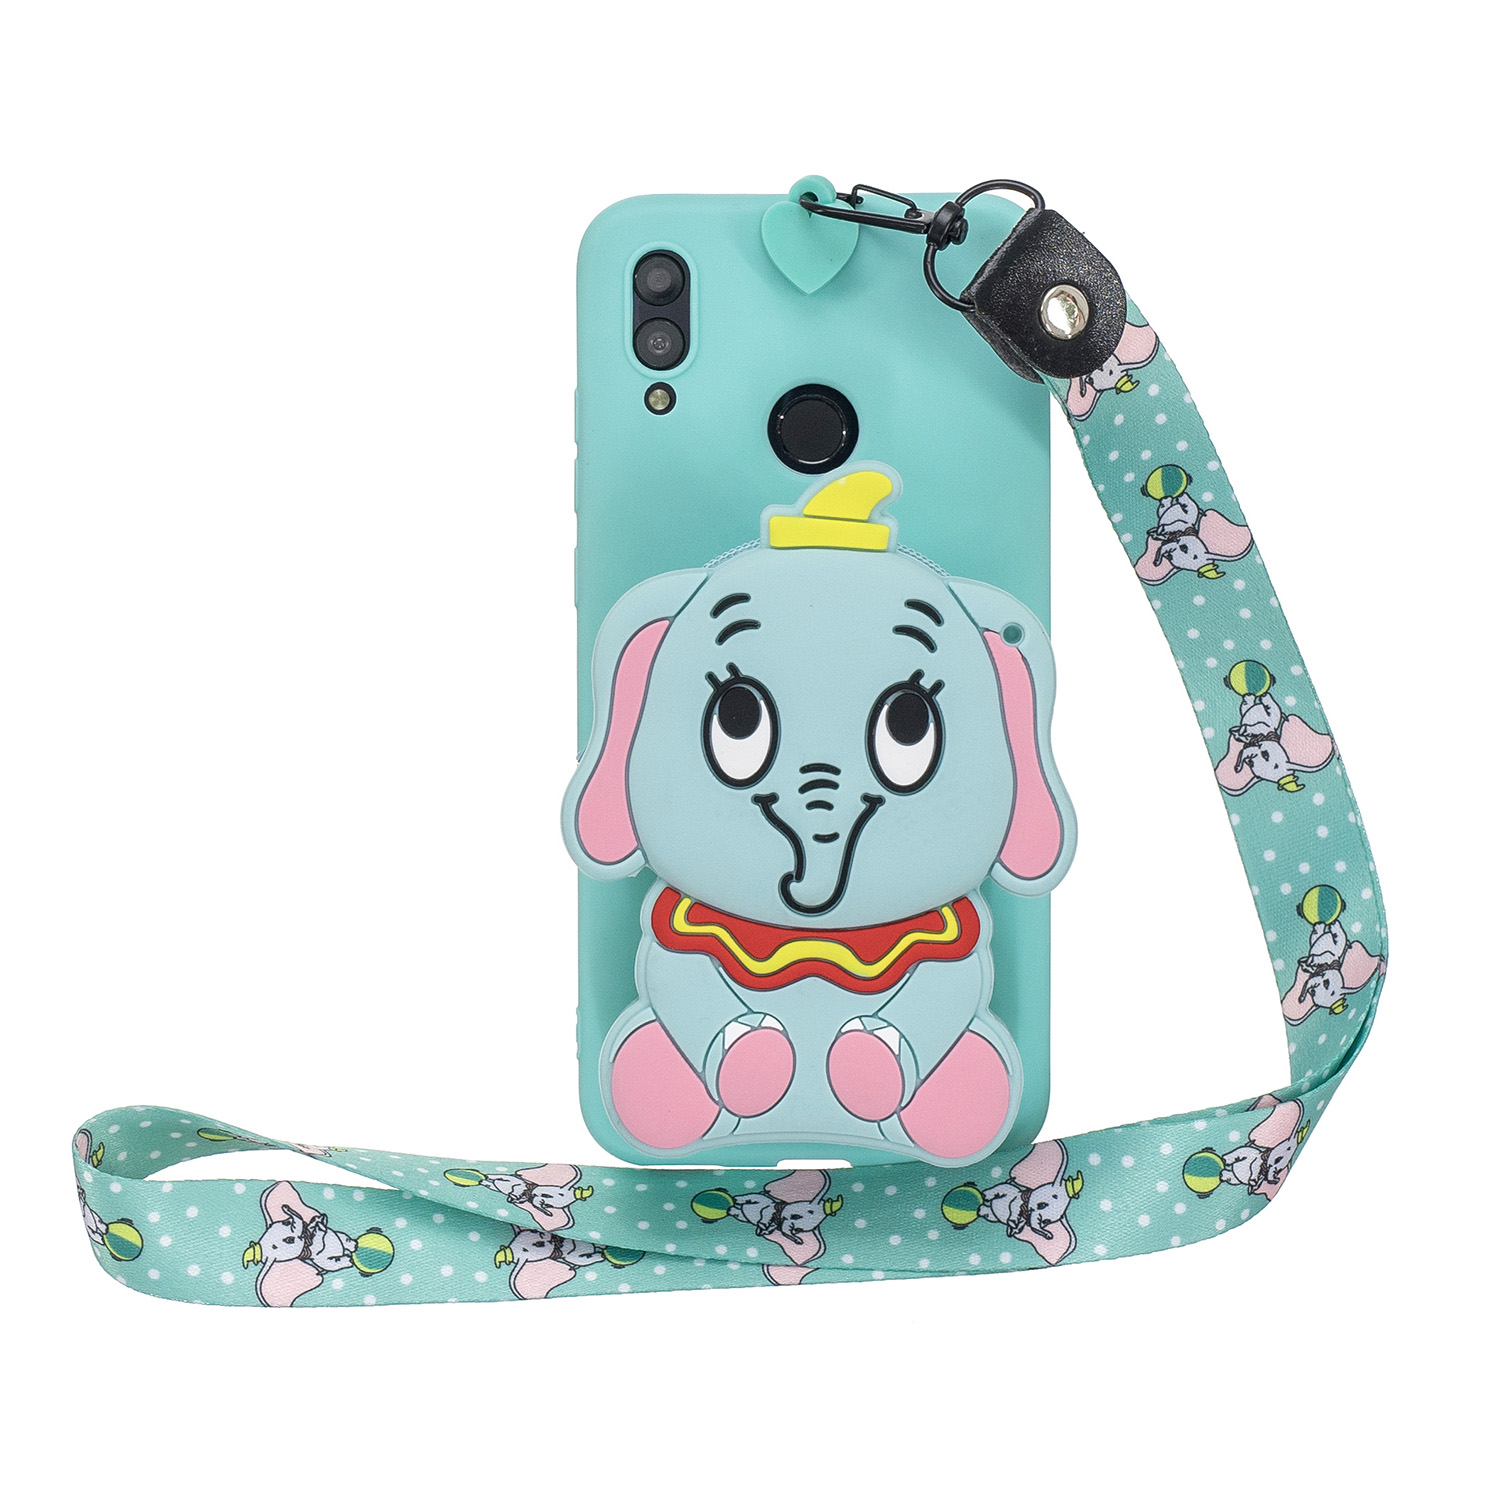 For HUAWEI Y6 2019 Y7 2019 Y9 2019 Cartoon Full Protective TPU Mobile Phone Cover with Mini Coin Purse+Cartoon Hanging Lanyard 2 light blue elephant